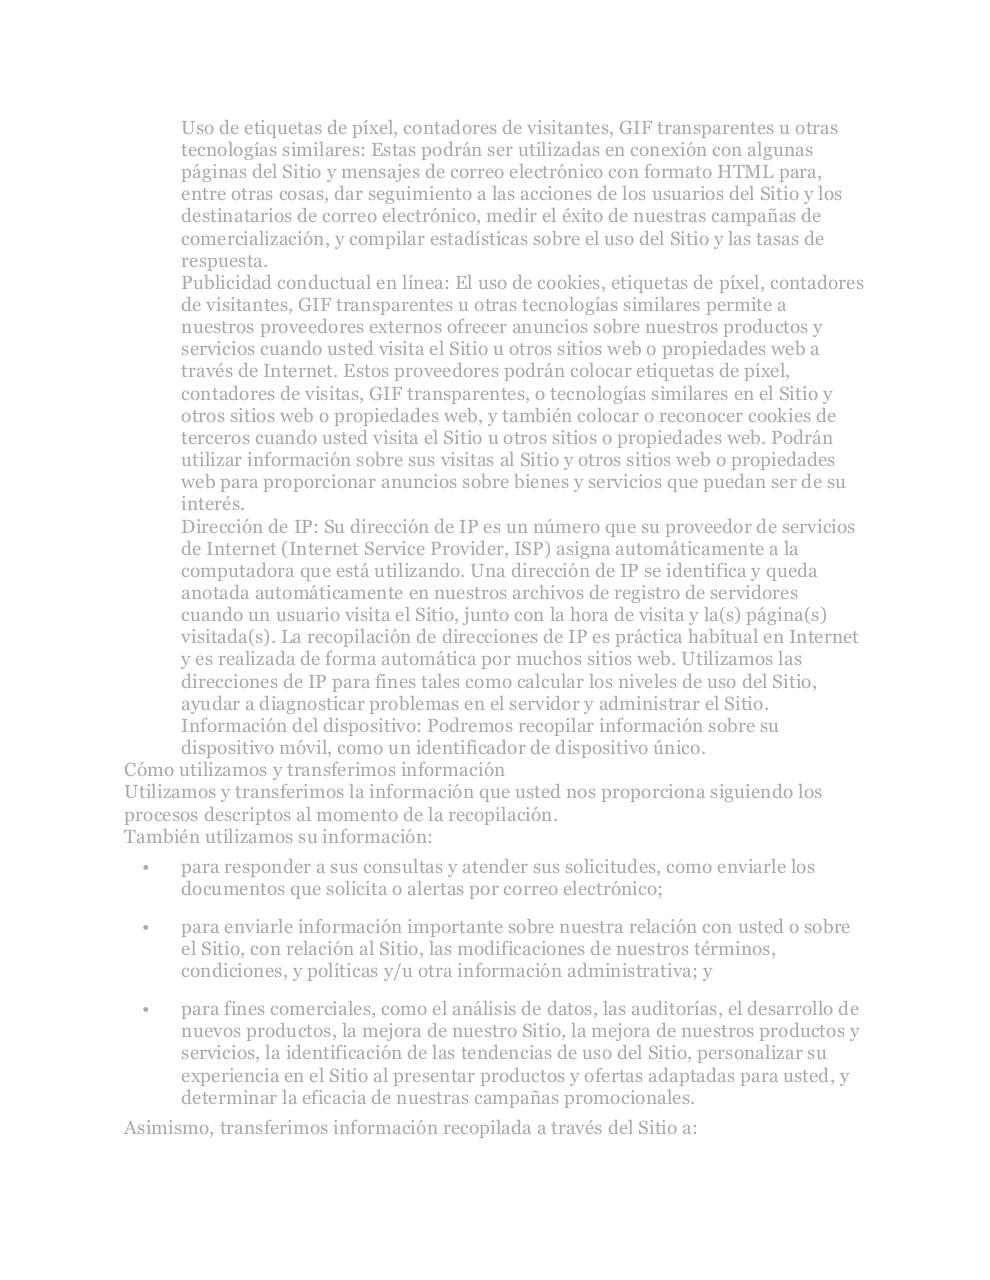 PrivacyPolicyARG.pdf - page 3/7